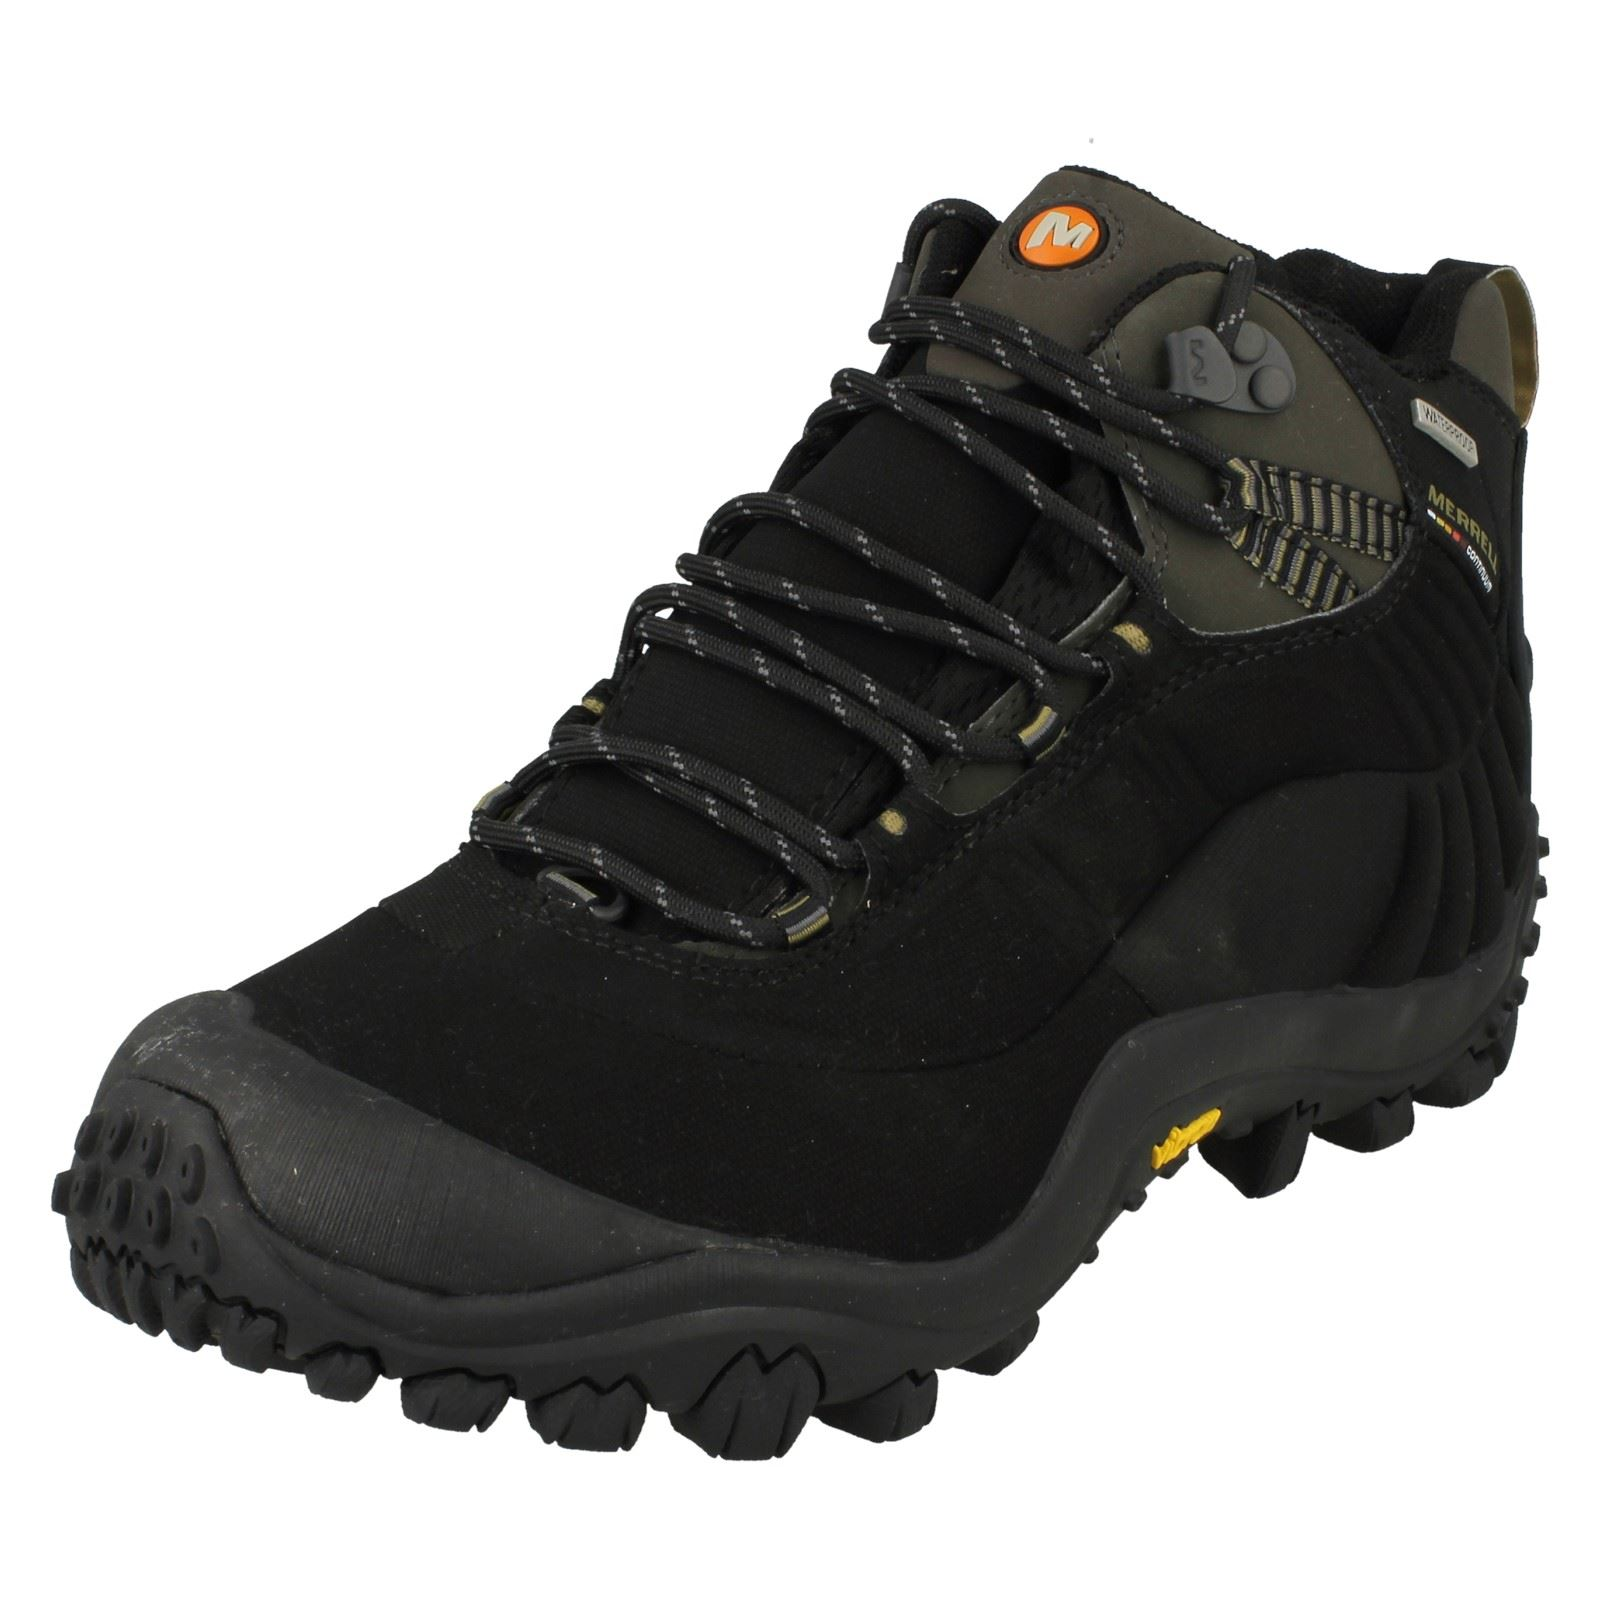 575b73ea57 Details about Mens Merrell Casual Waterproof Lace Up Walking Boots -  Chameleon